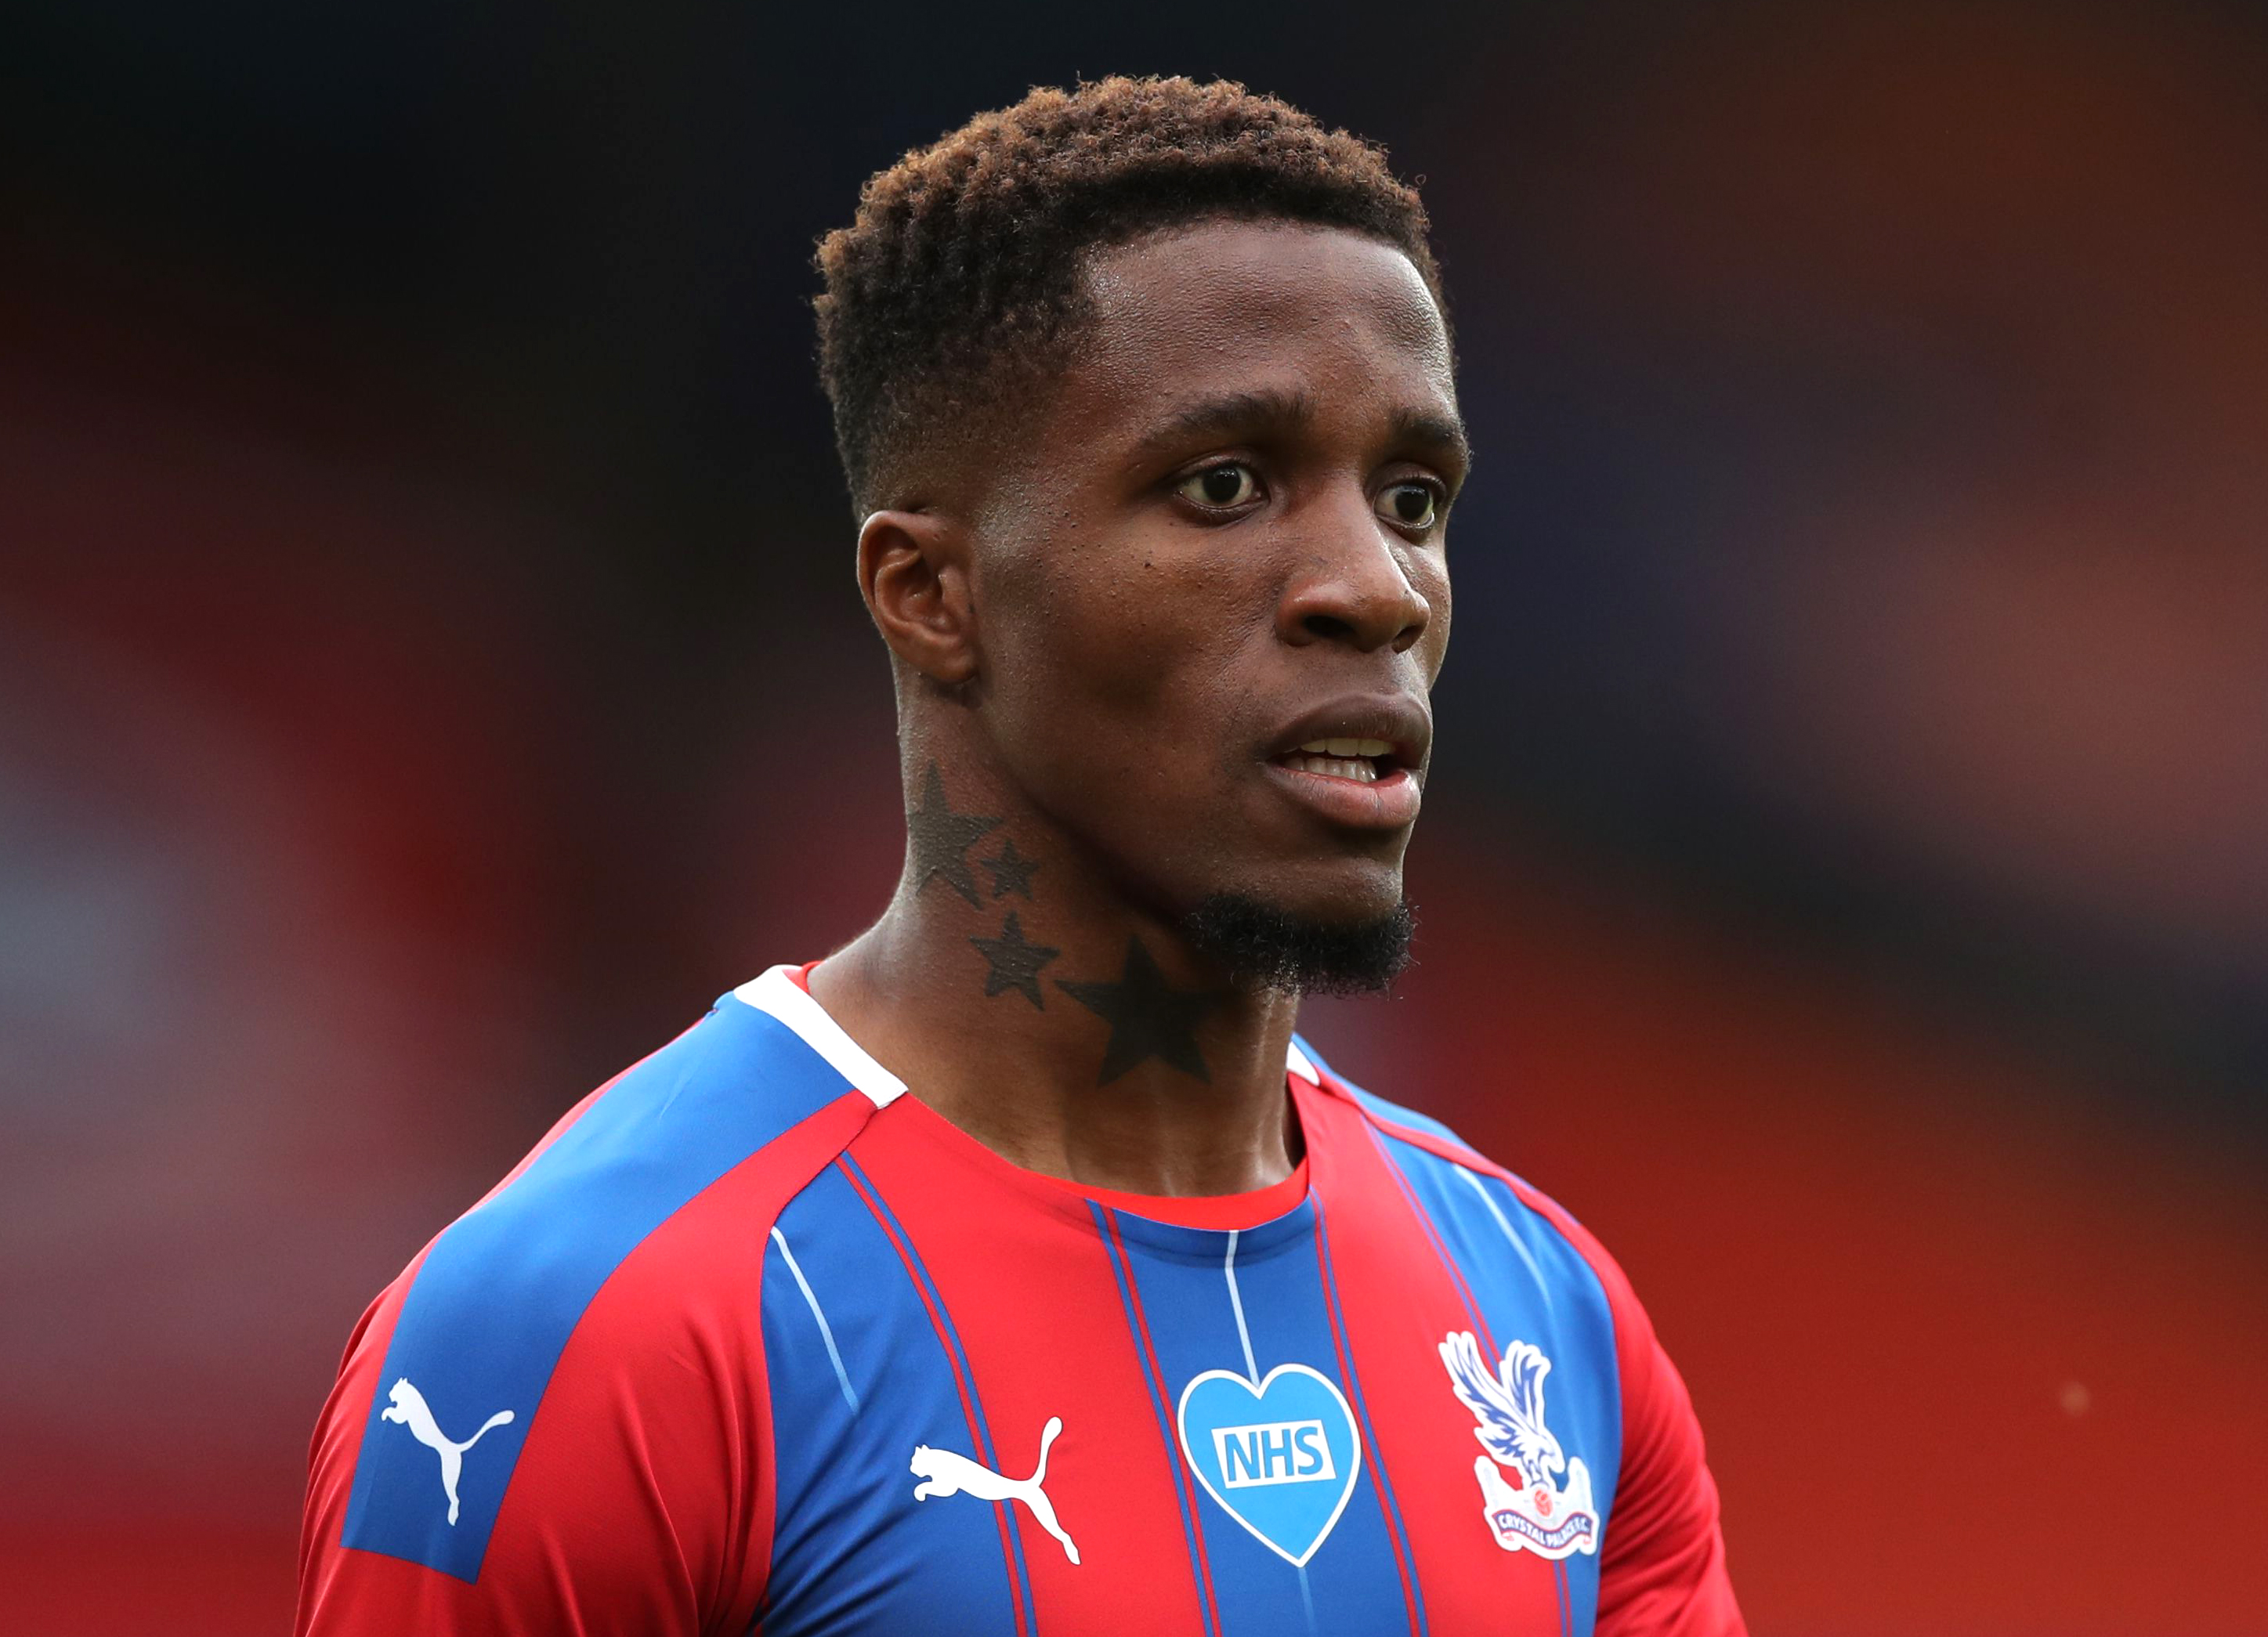 Premier League star Zaha racially abused on social media